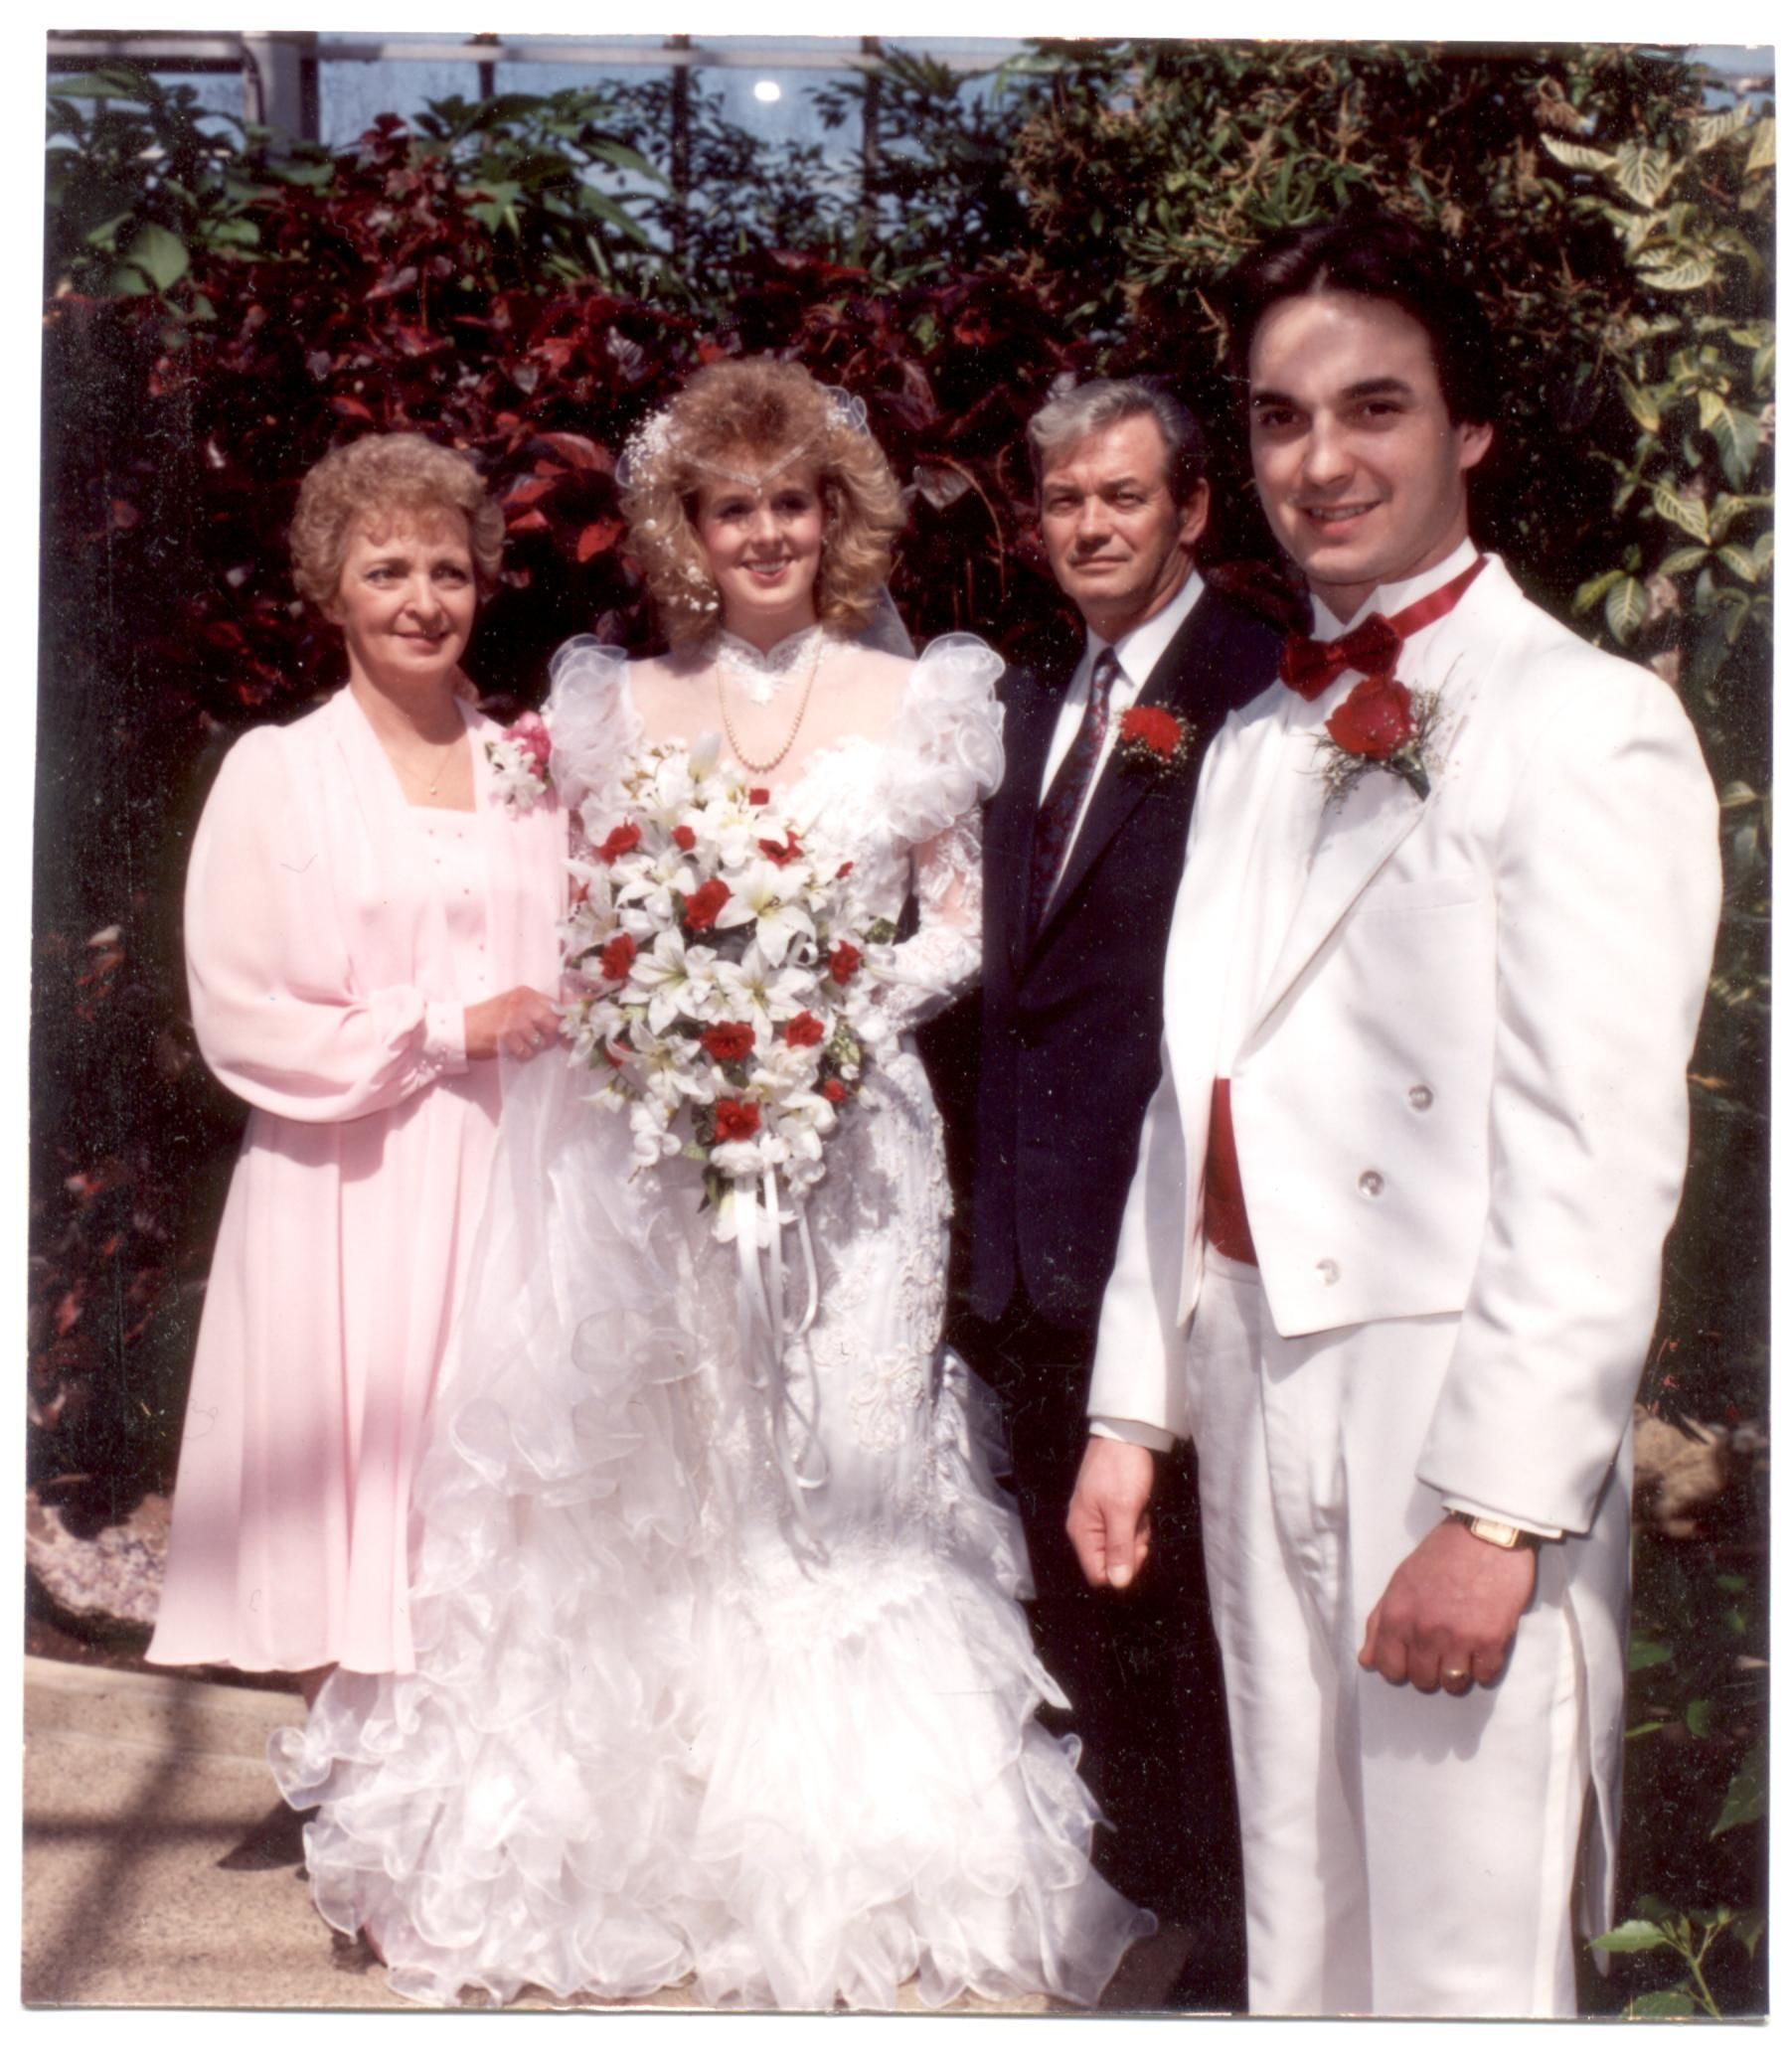 Vintage Wedding Dresses Bay Area: Pin By Maggie Cook On 80s And 90s Wedding Dresses